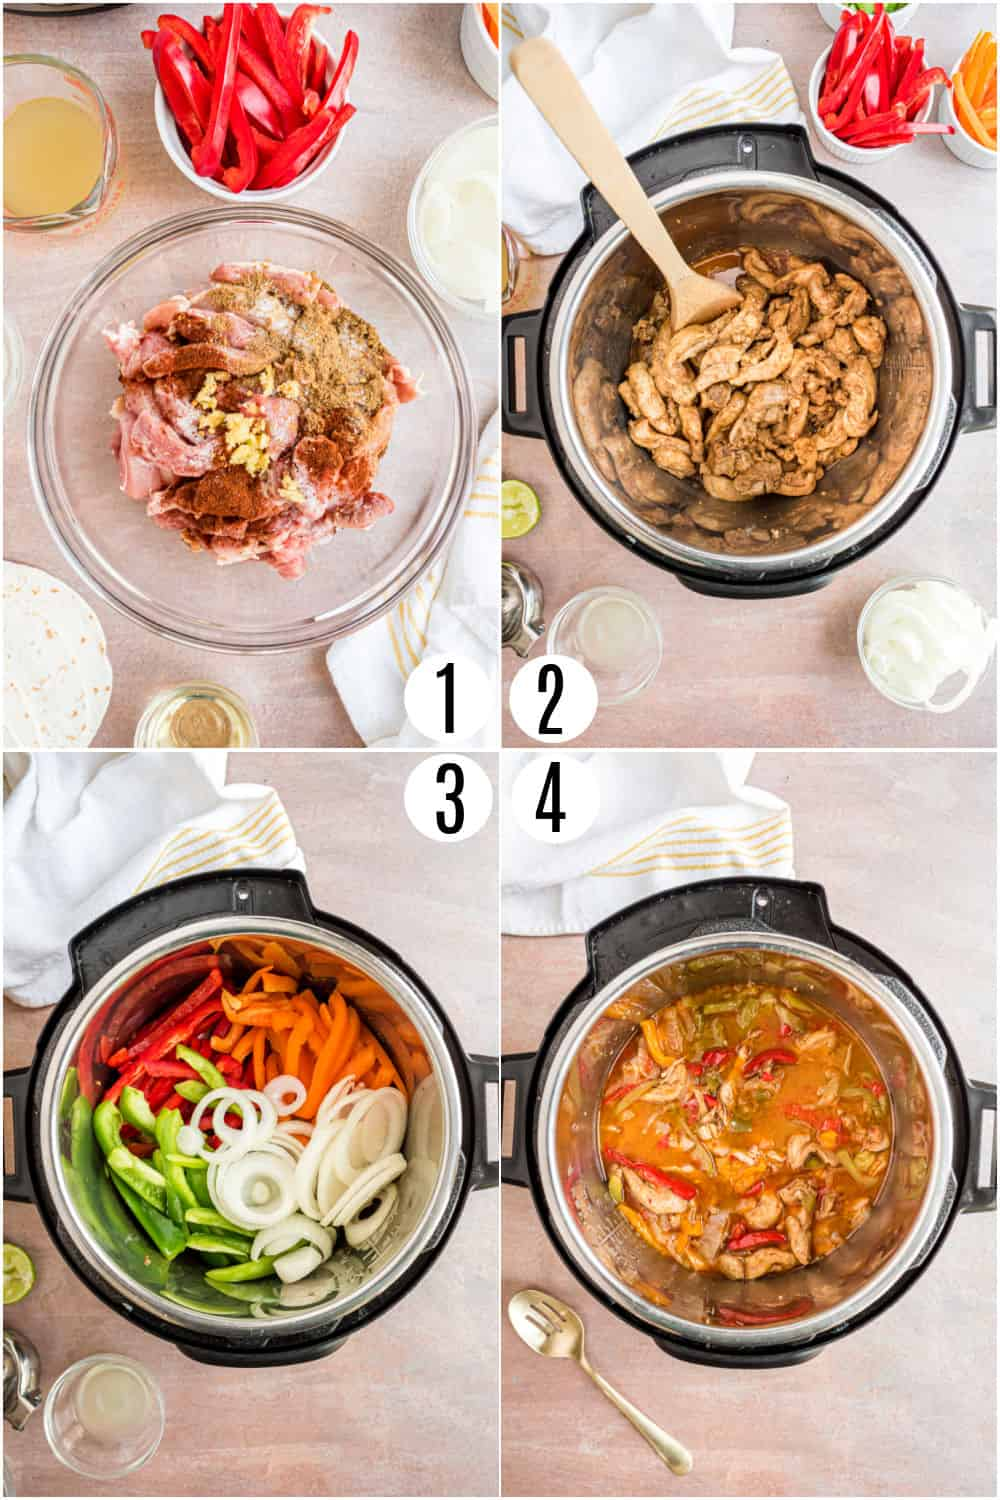 Step by step photos showing how to make chicken fajitas in the pressure cooker.